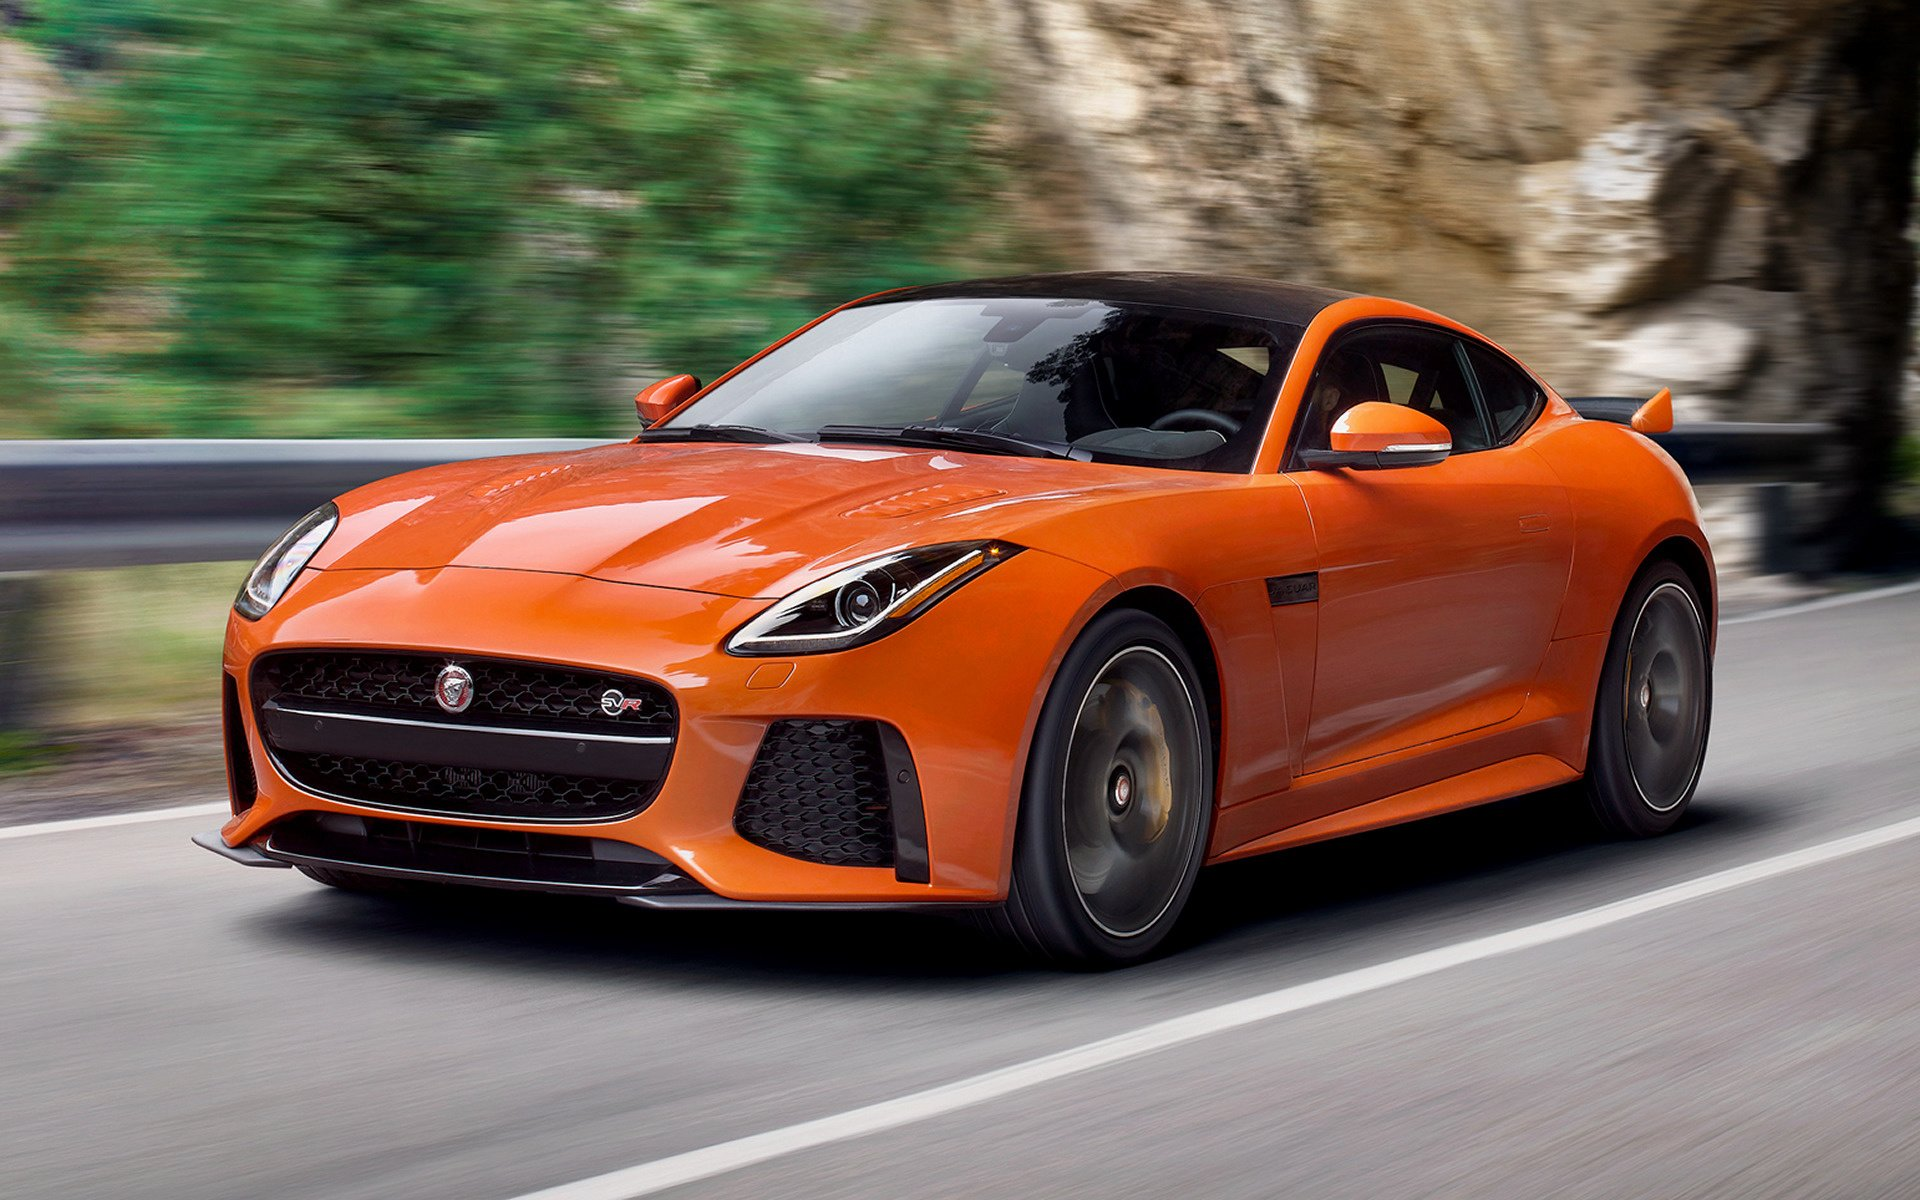 In True 007 Style You Can Now Control Your Jaguar Car